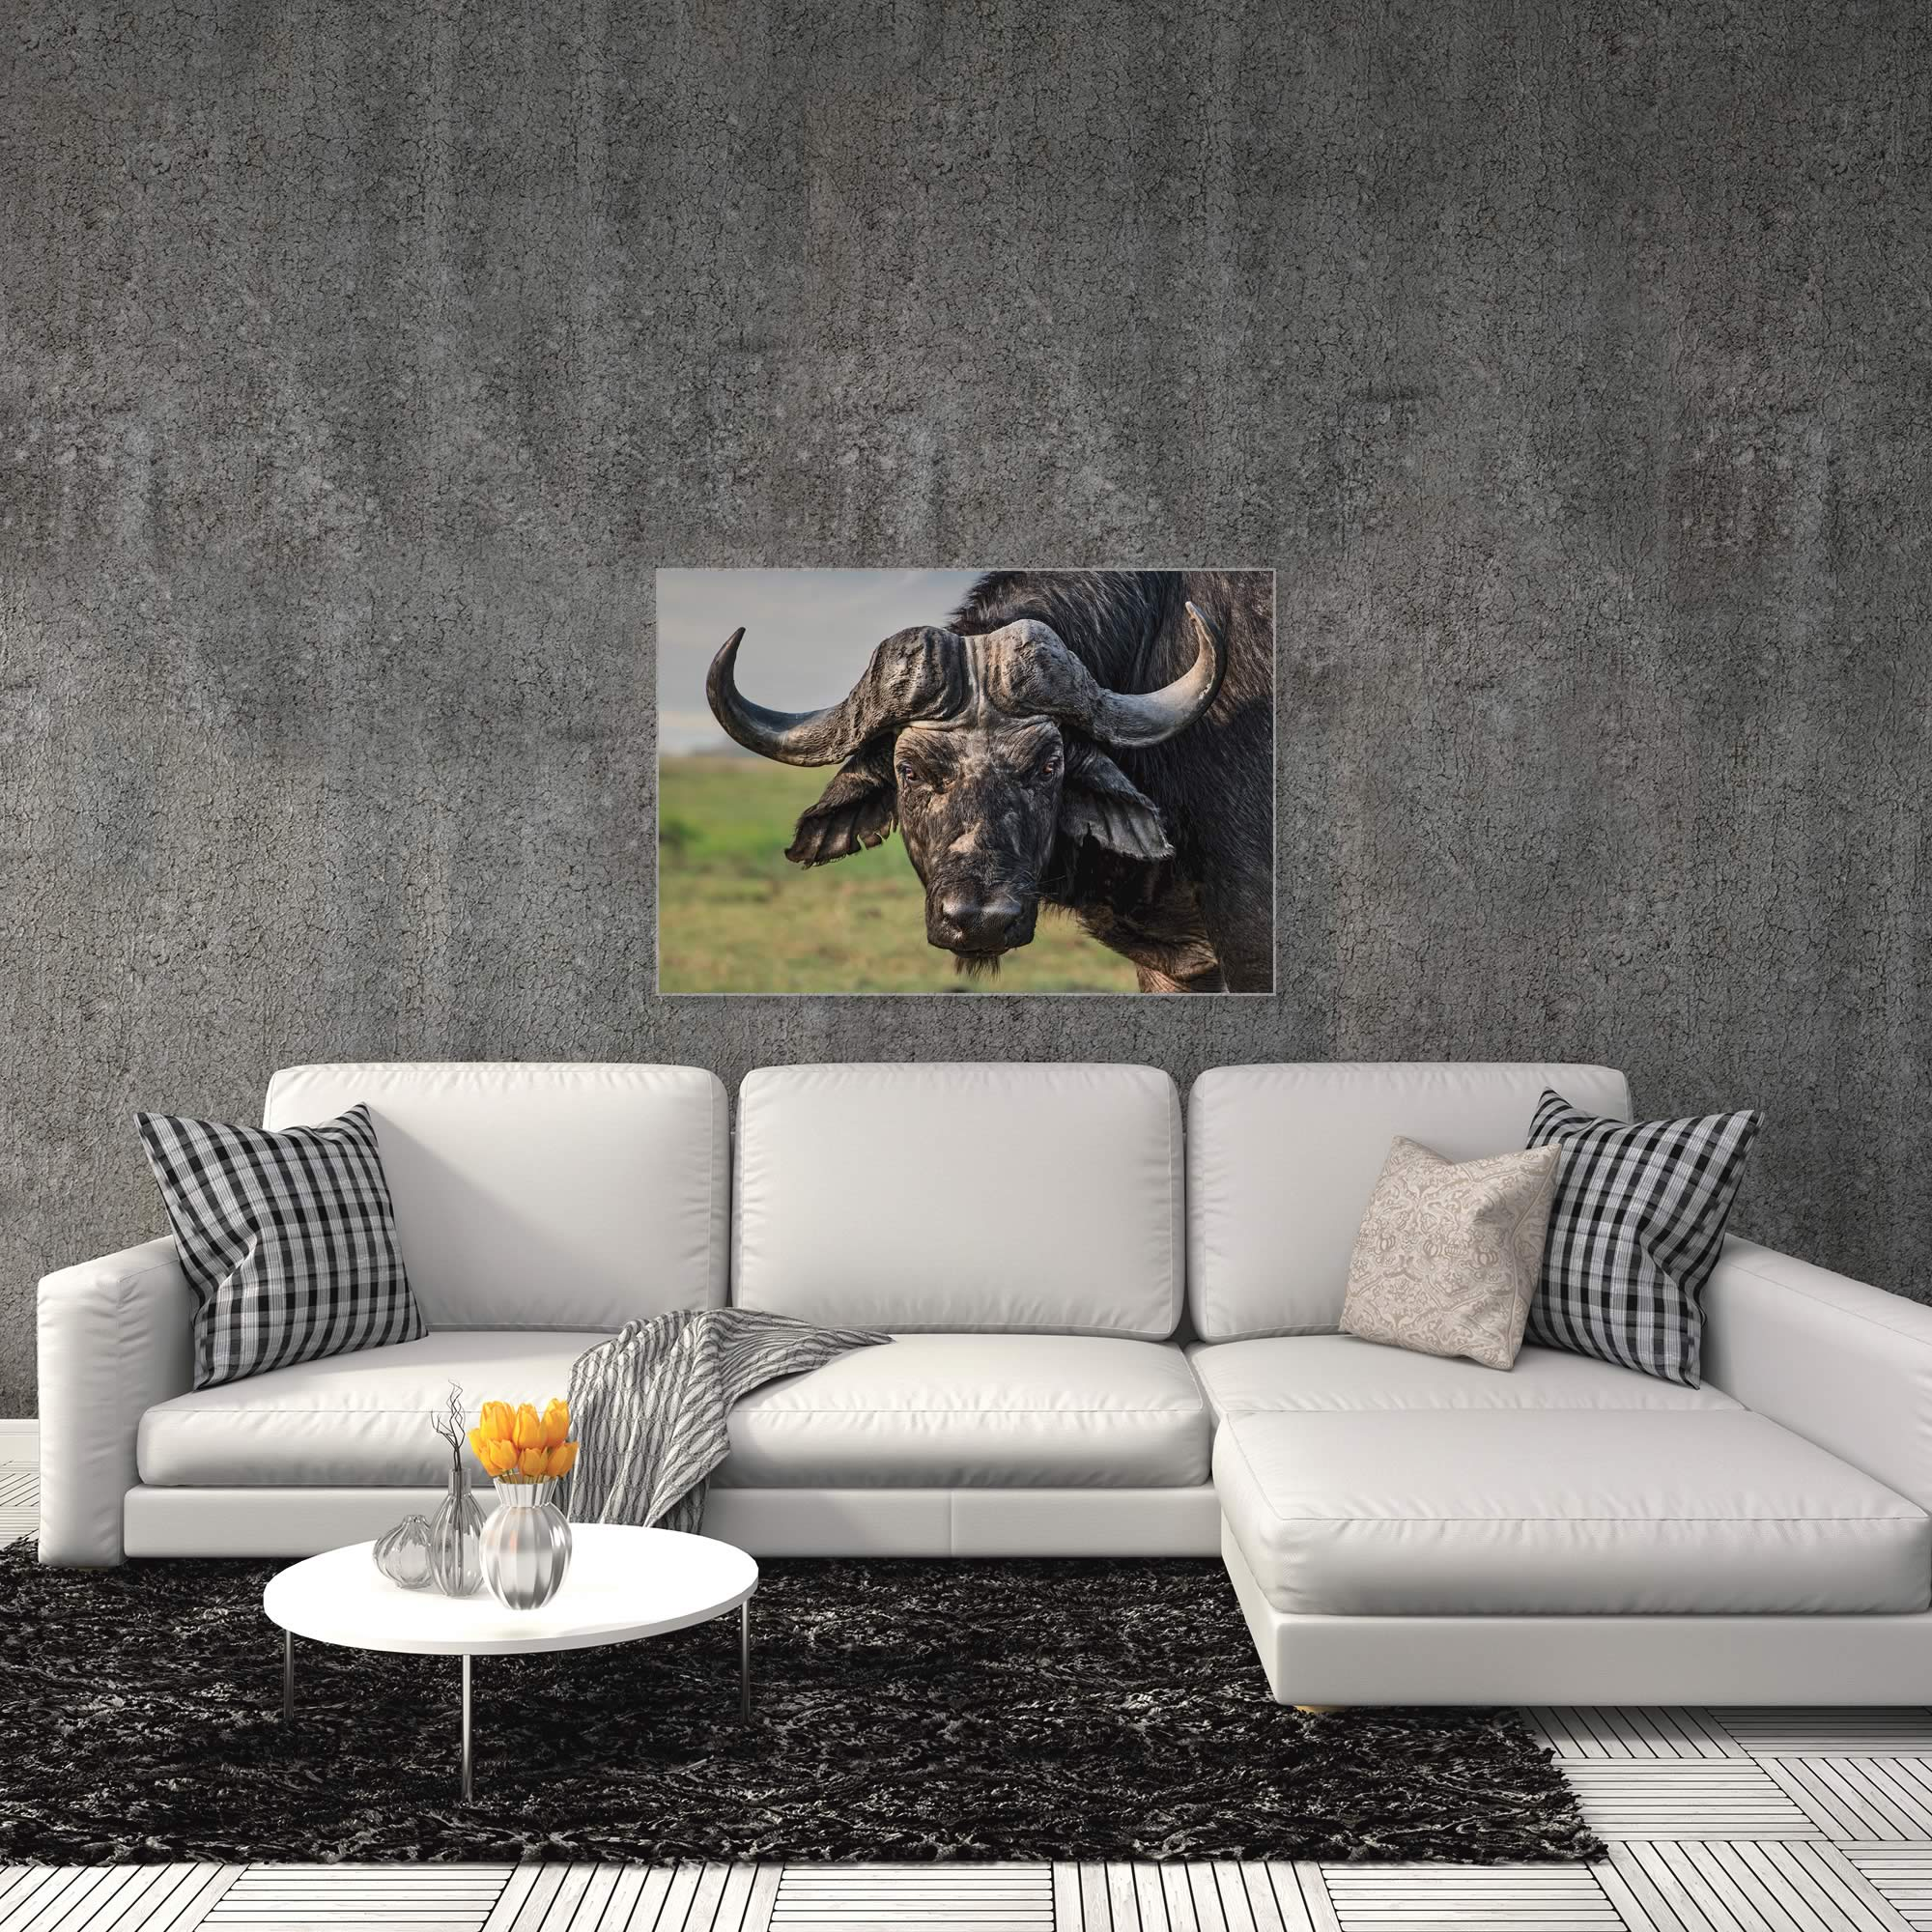 The Old Fighter Buffalo by Piet Flour - Buffalo Wall Art on Metal or Acrylic - Alternate View 3